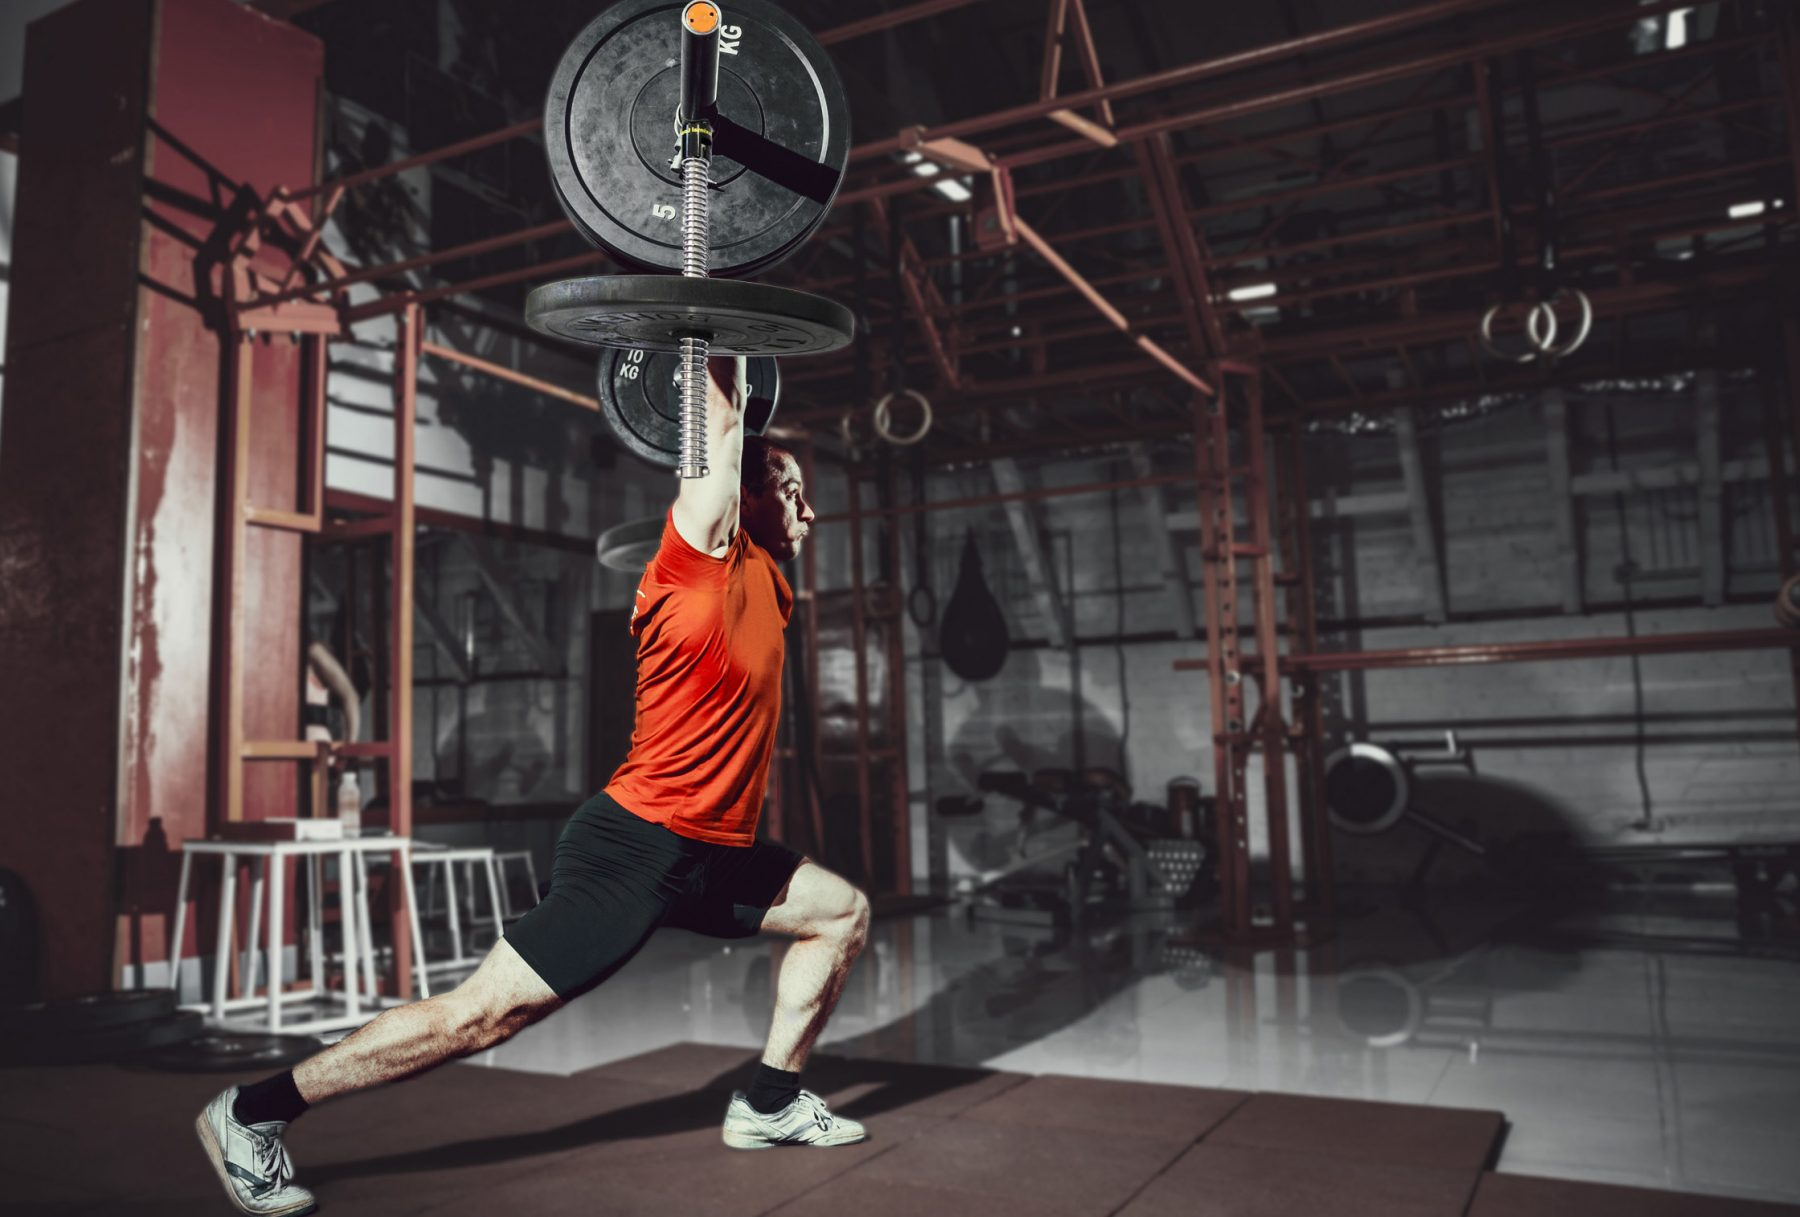 a man weight training in a gym with Tendo Barbell destabiliser while performing lunges to improve his balance and power - Tendo Sport